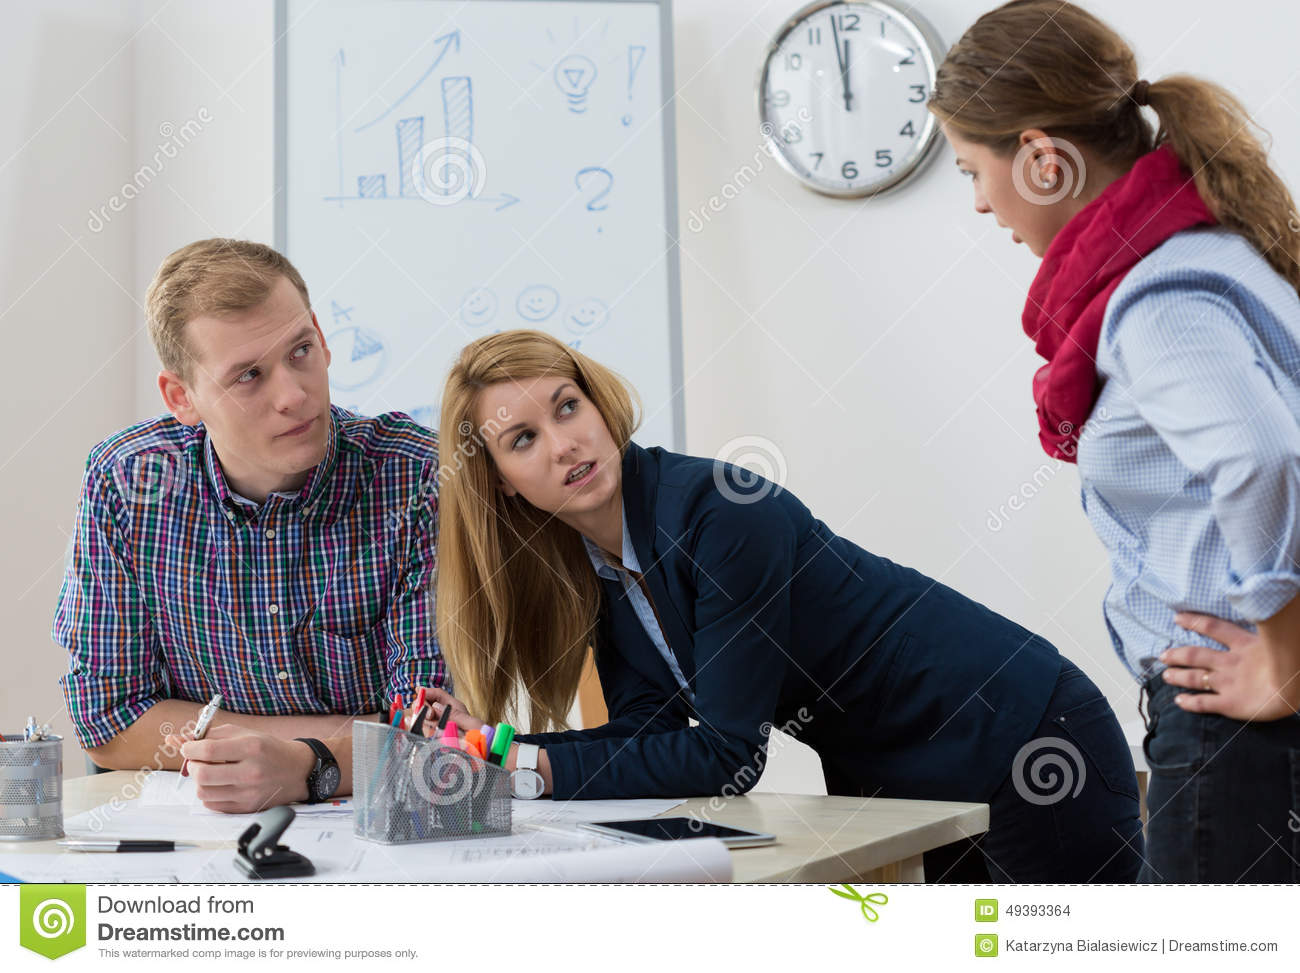 Argument at workplace